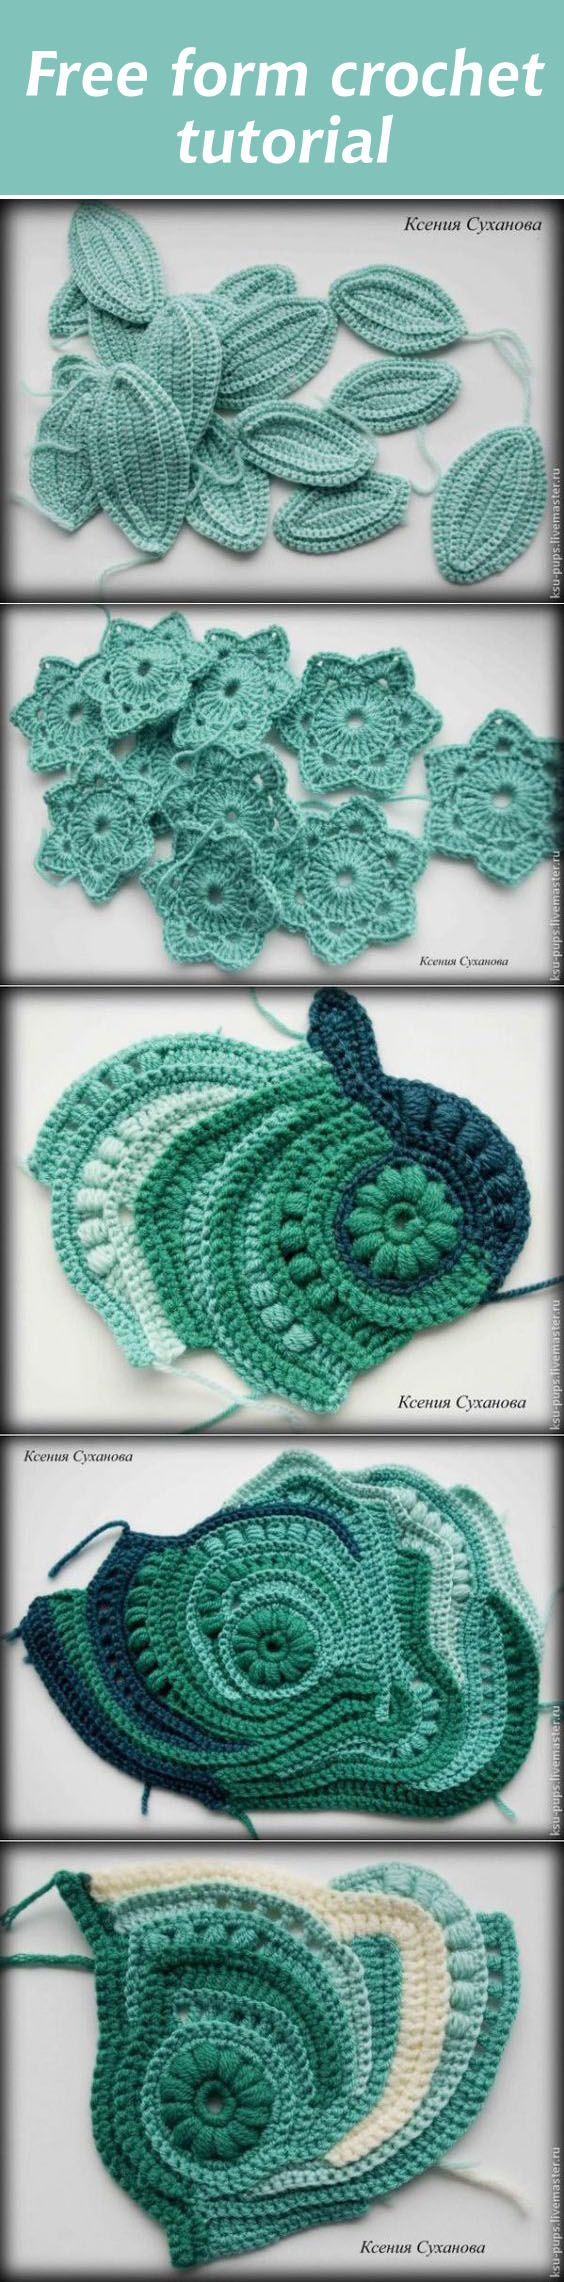 Free form crochet tutorial